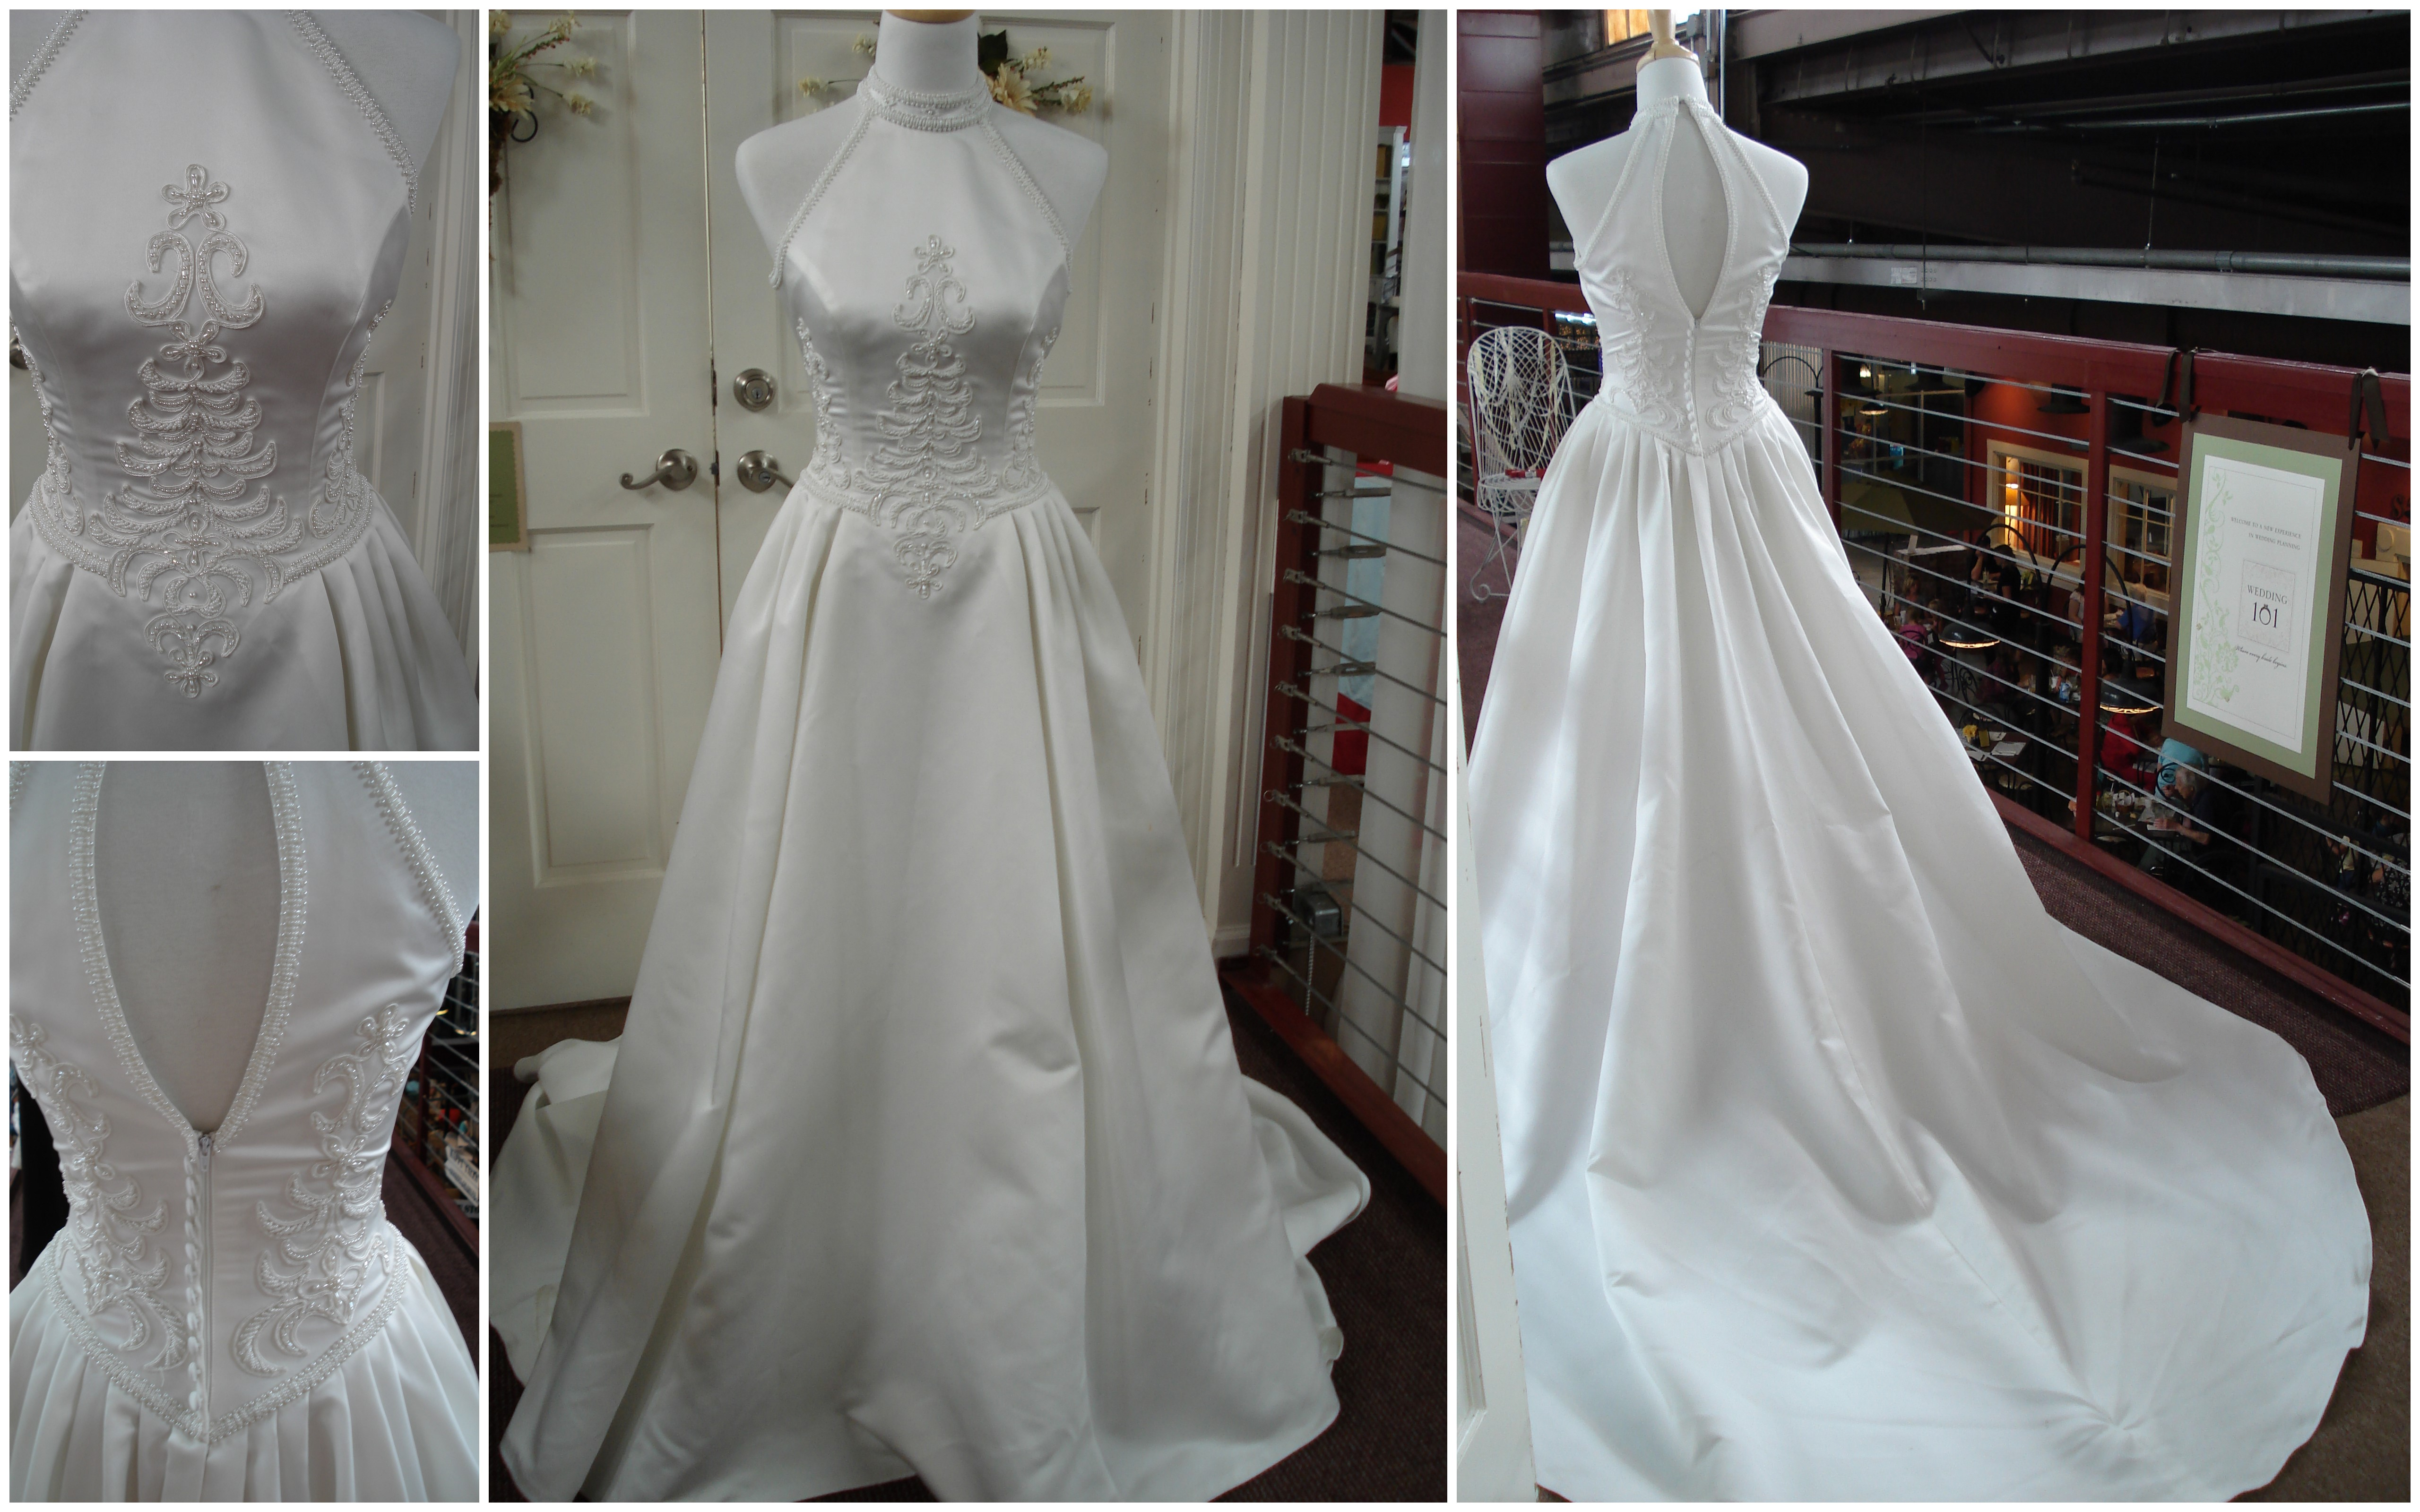 Wedding 101 Bridal Expo and Silent Auction: Gown sneak peek ...